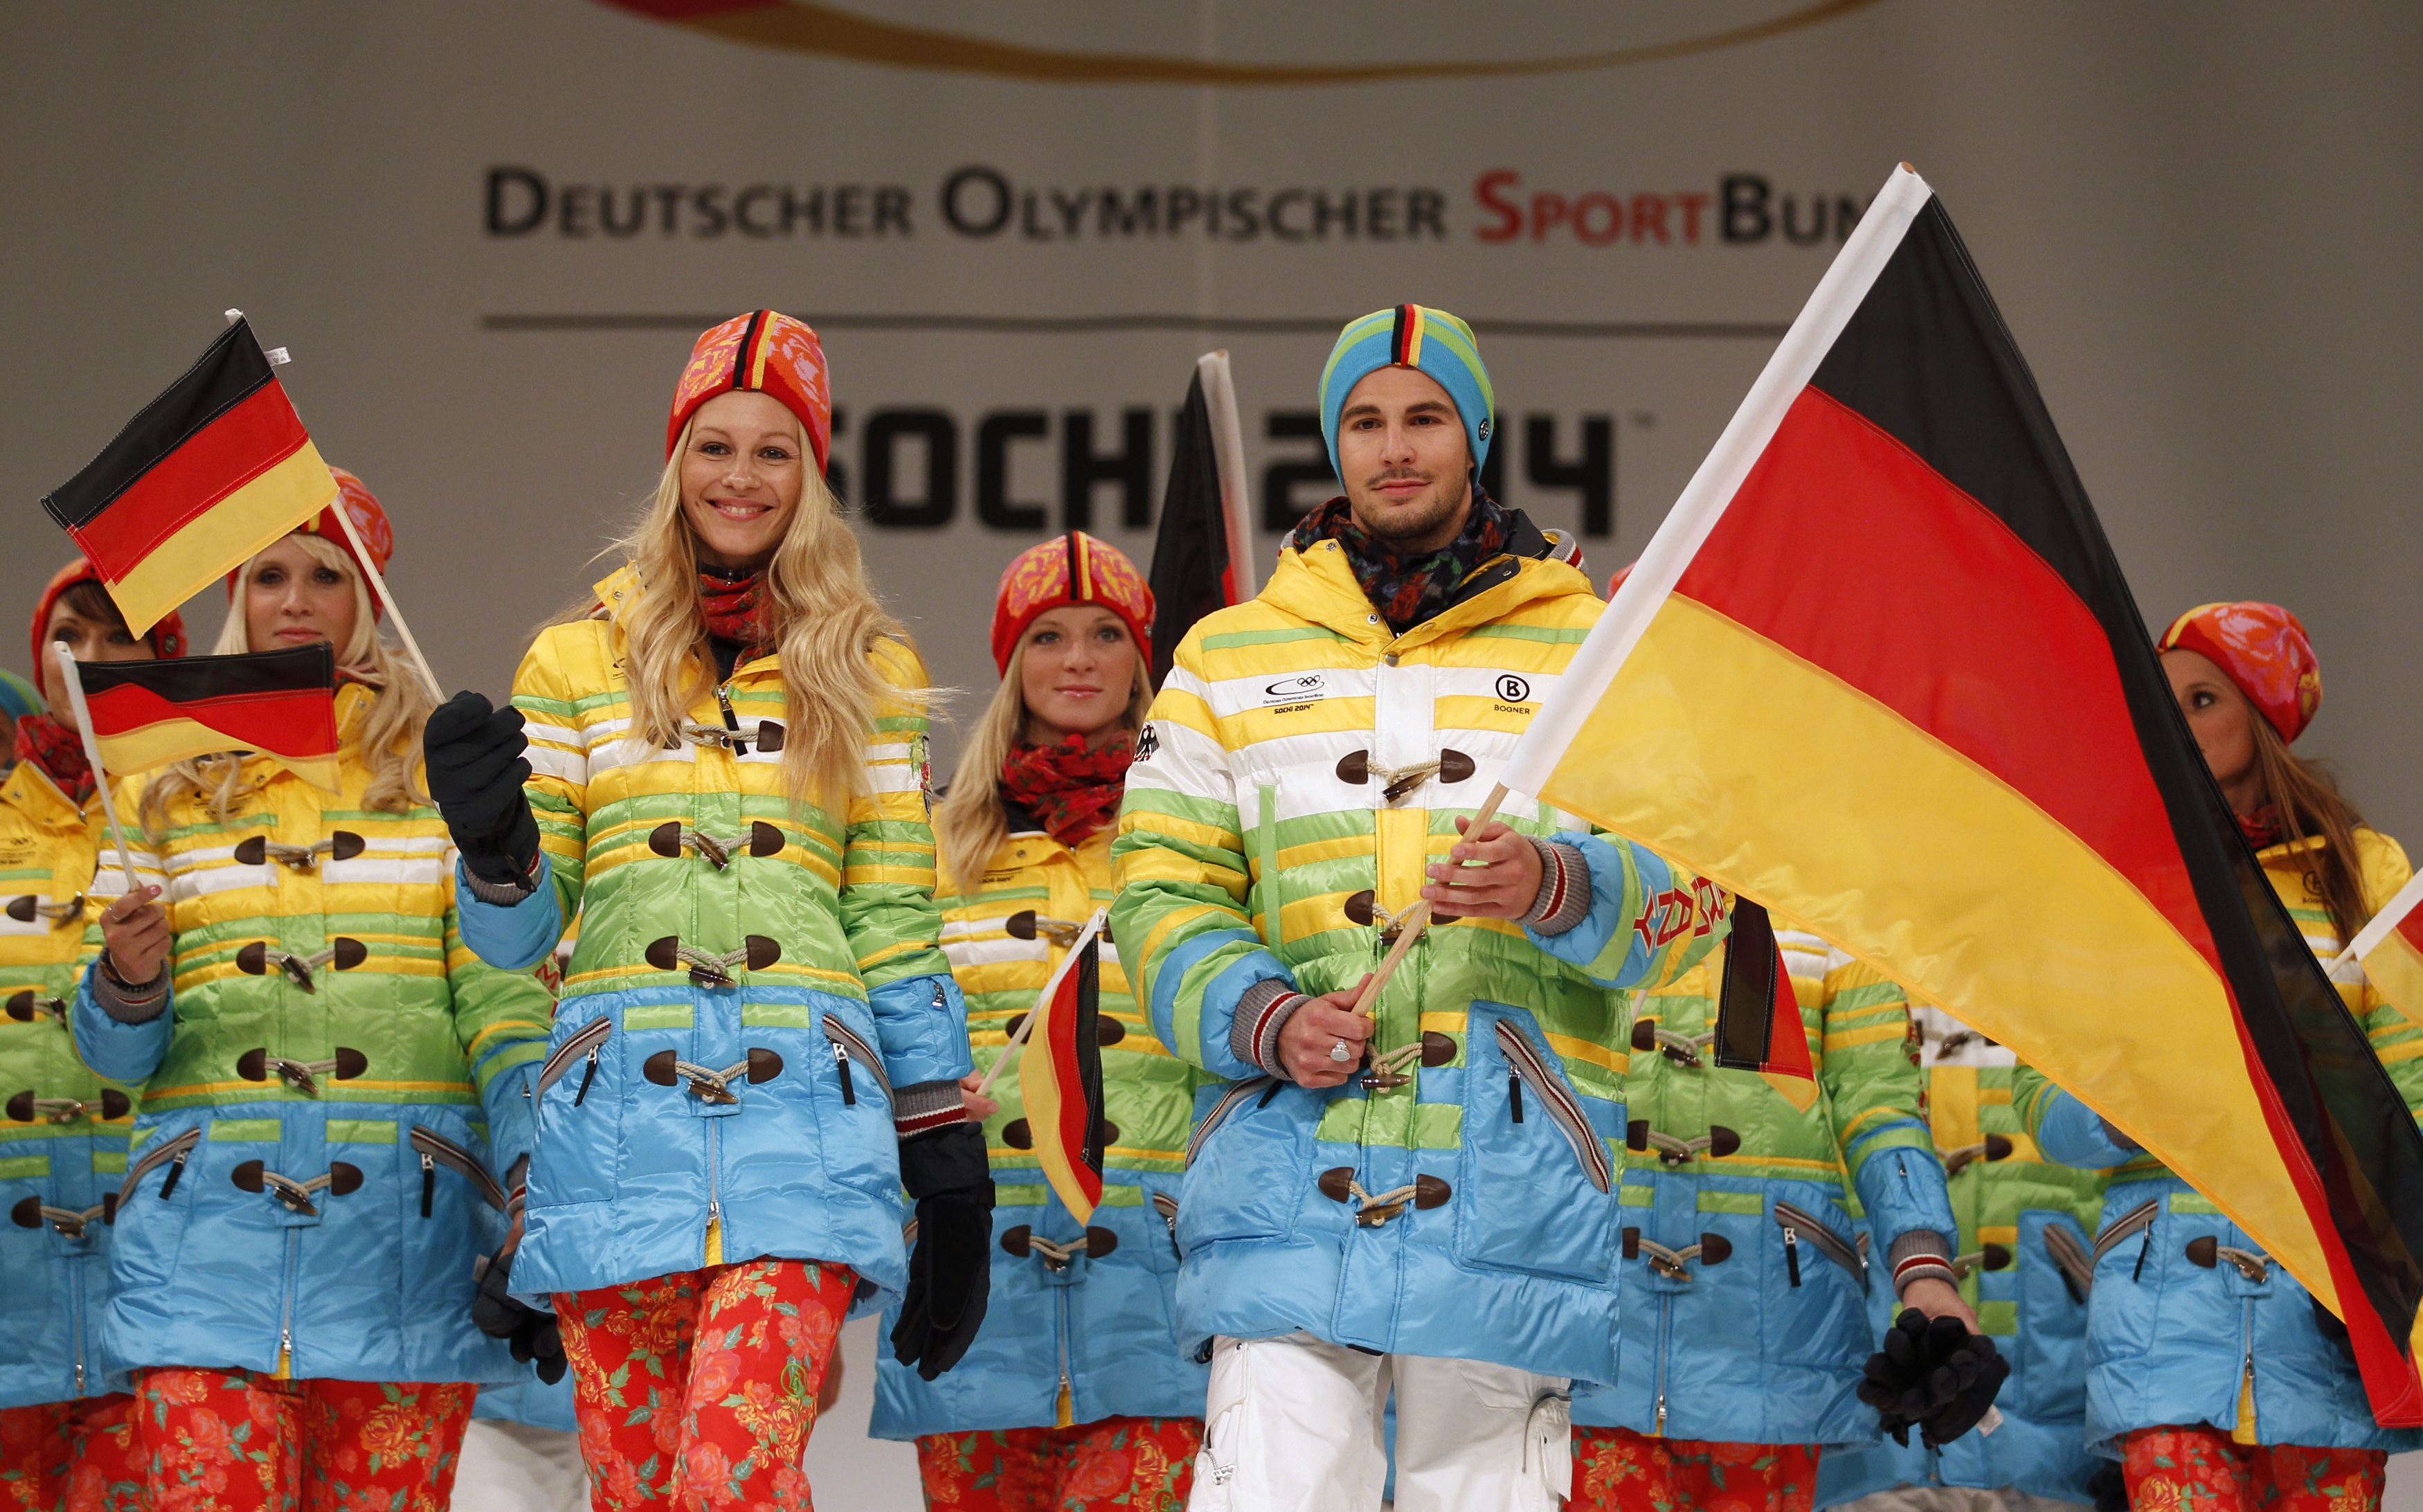 German athletes are sure to stand out with these multi-colored duffle coats.